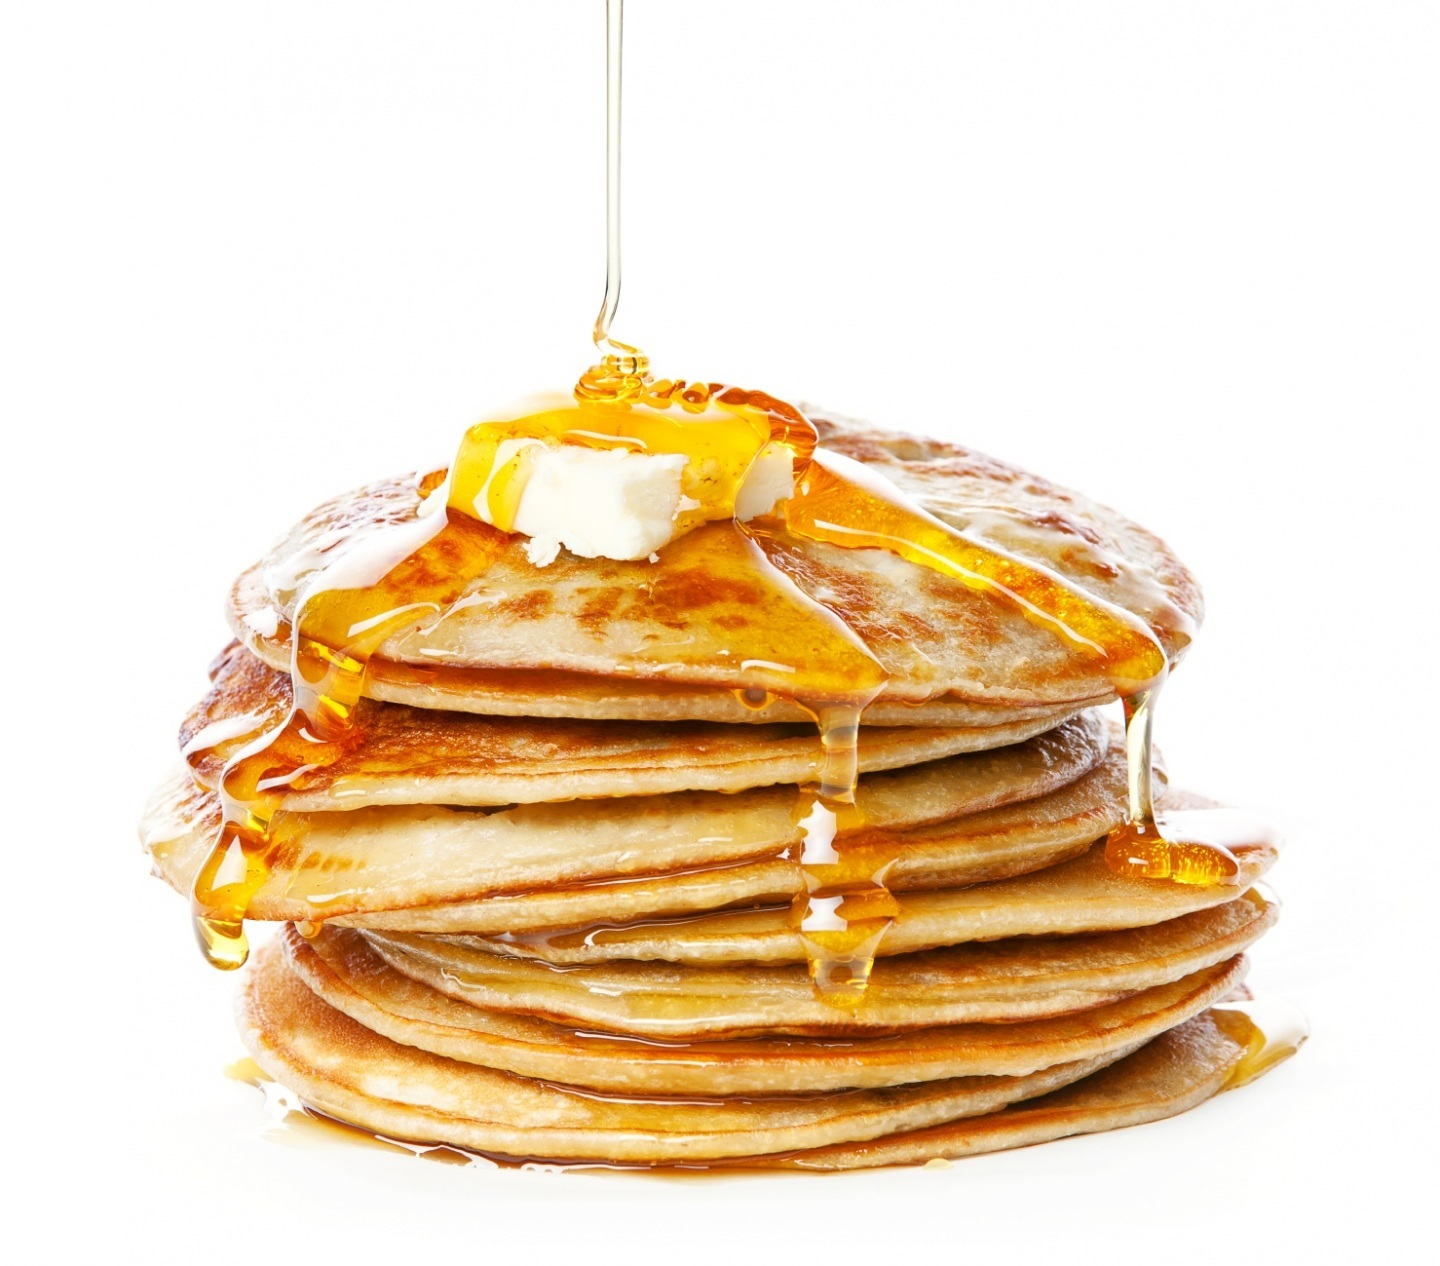 Pancake clipart delicious Shared henrie8 Pancakes henrie8 Pancakes